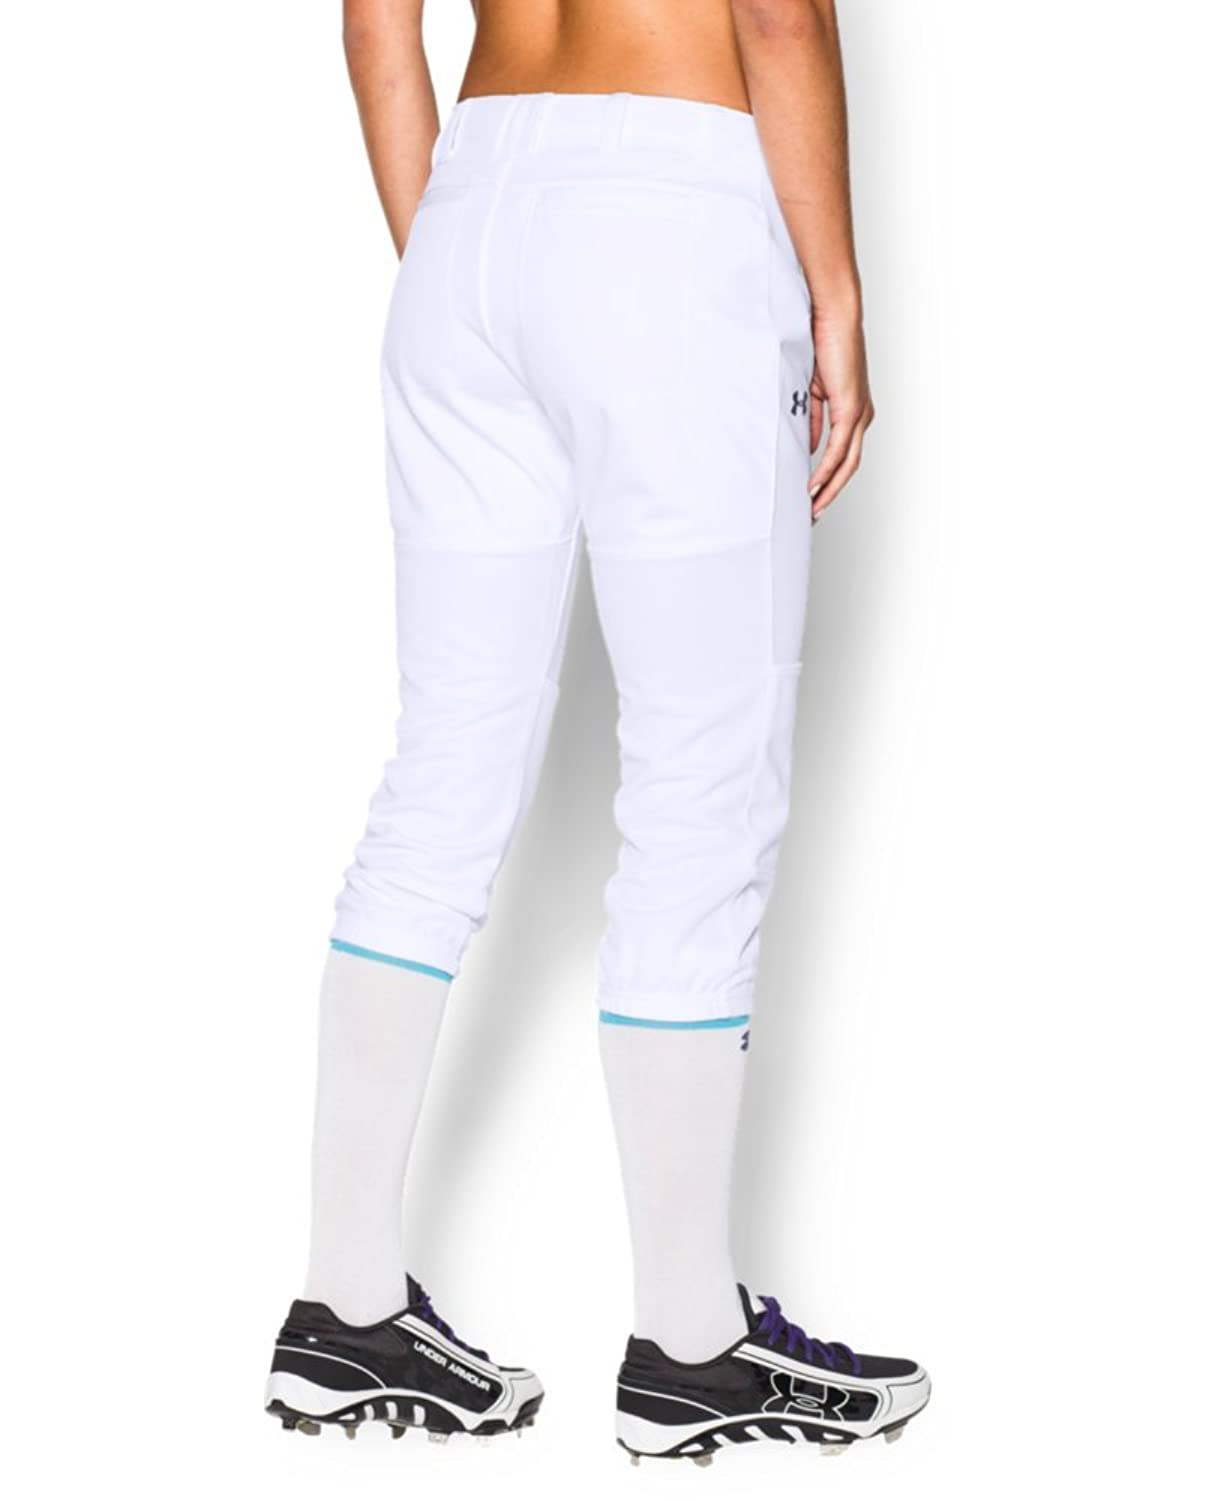 Womens Under Armour Strike Zone Softball Pant Sports Golf Wiring Schematicit Shortsi Put The Positive Battery Cable On Outdoors